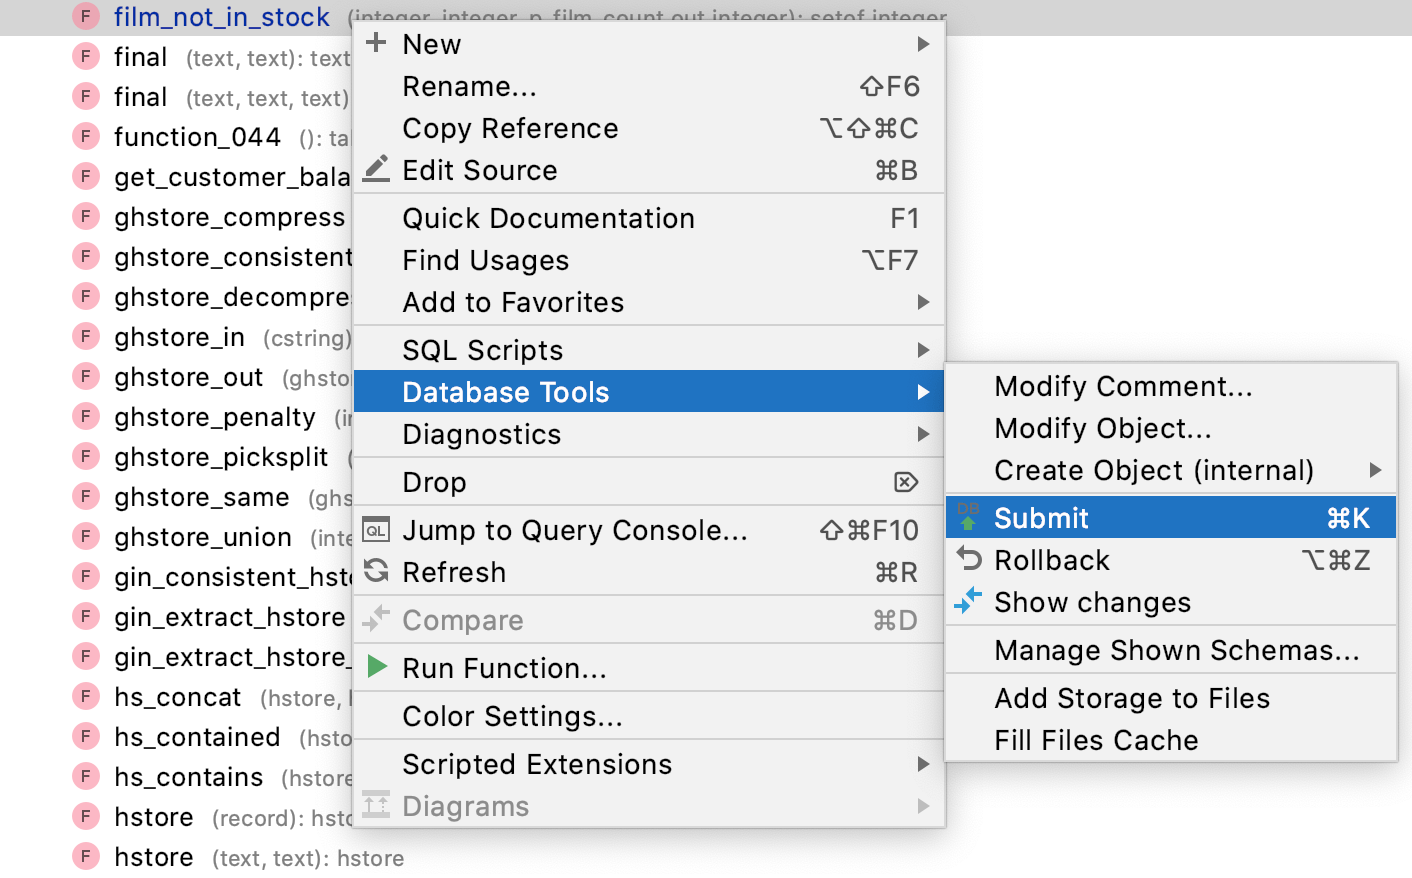 Submit, Rollback, and Show Changes in the context menu